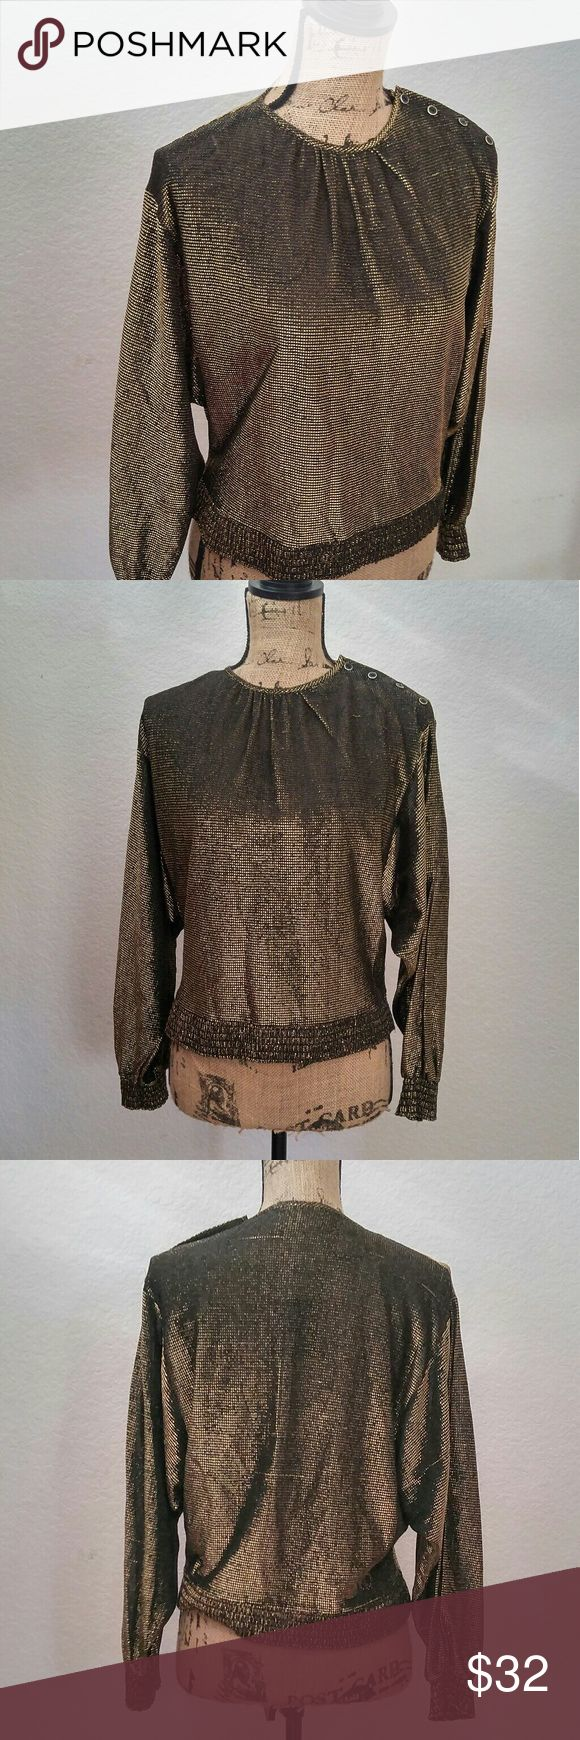 """70's Black & Gold Shimmer Batwing Shirt In the sun this blouse is the epitomy of 70's rock glam! The glitter & gold & and the semi sheer bag wing sleeves make this shirt absolutely stunning. Like all vintage it's one of a kind, so if you love it make it yours before someone else does. If this was my size there is no way I'd be selling it!  Shoulder to shoulder 18"""" Bust/ Underarm to Underarm 20"""" Waist 17""""-19"""" Length 20"""". Choose a free pair of Leg Luxury tights with any purchase of $45 or…"""